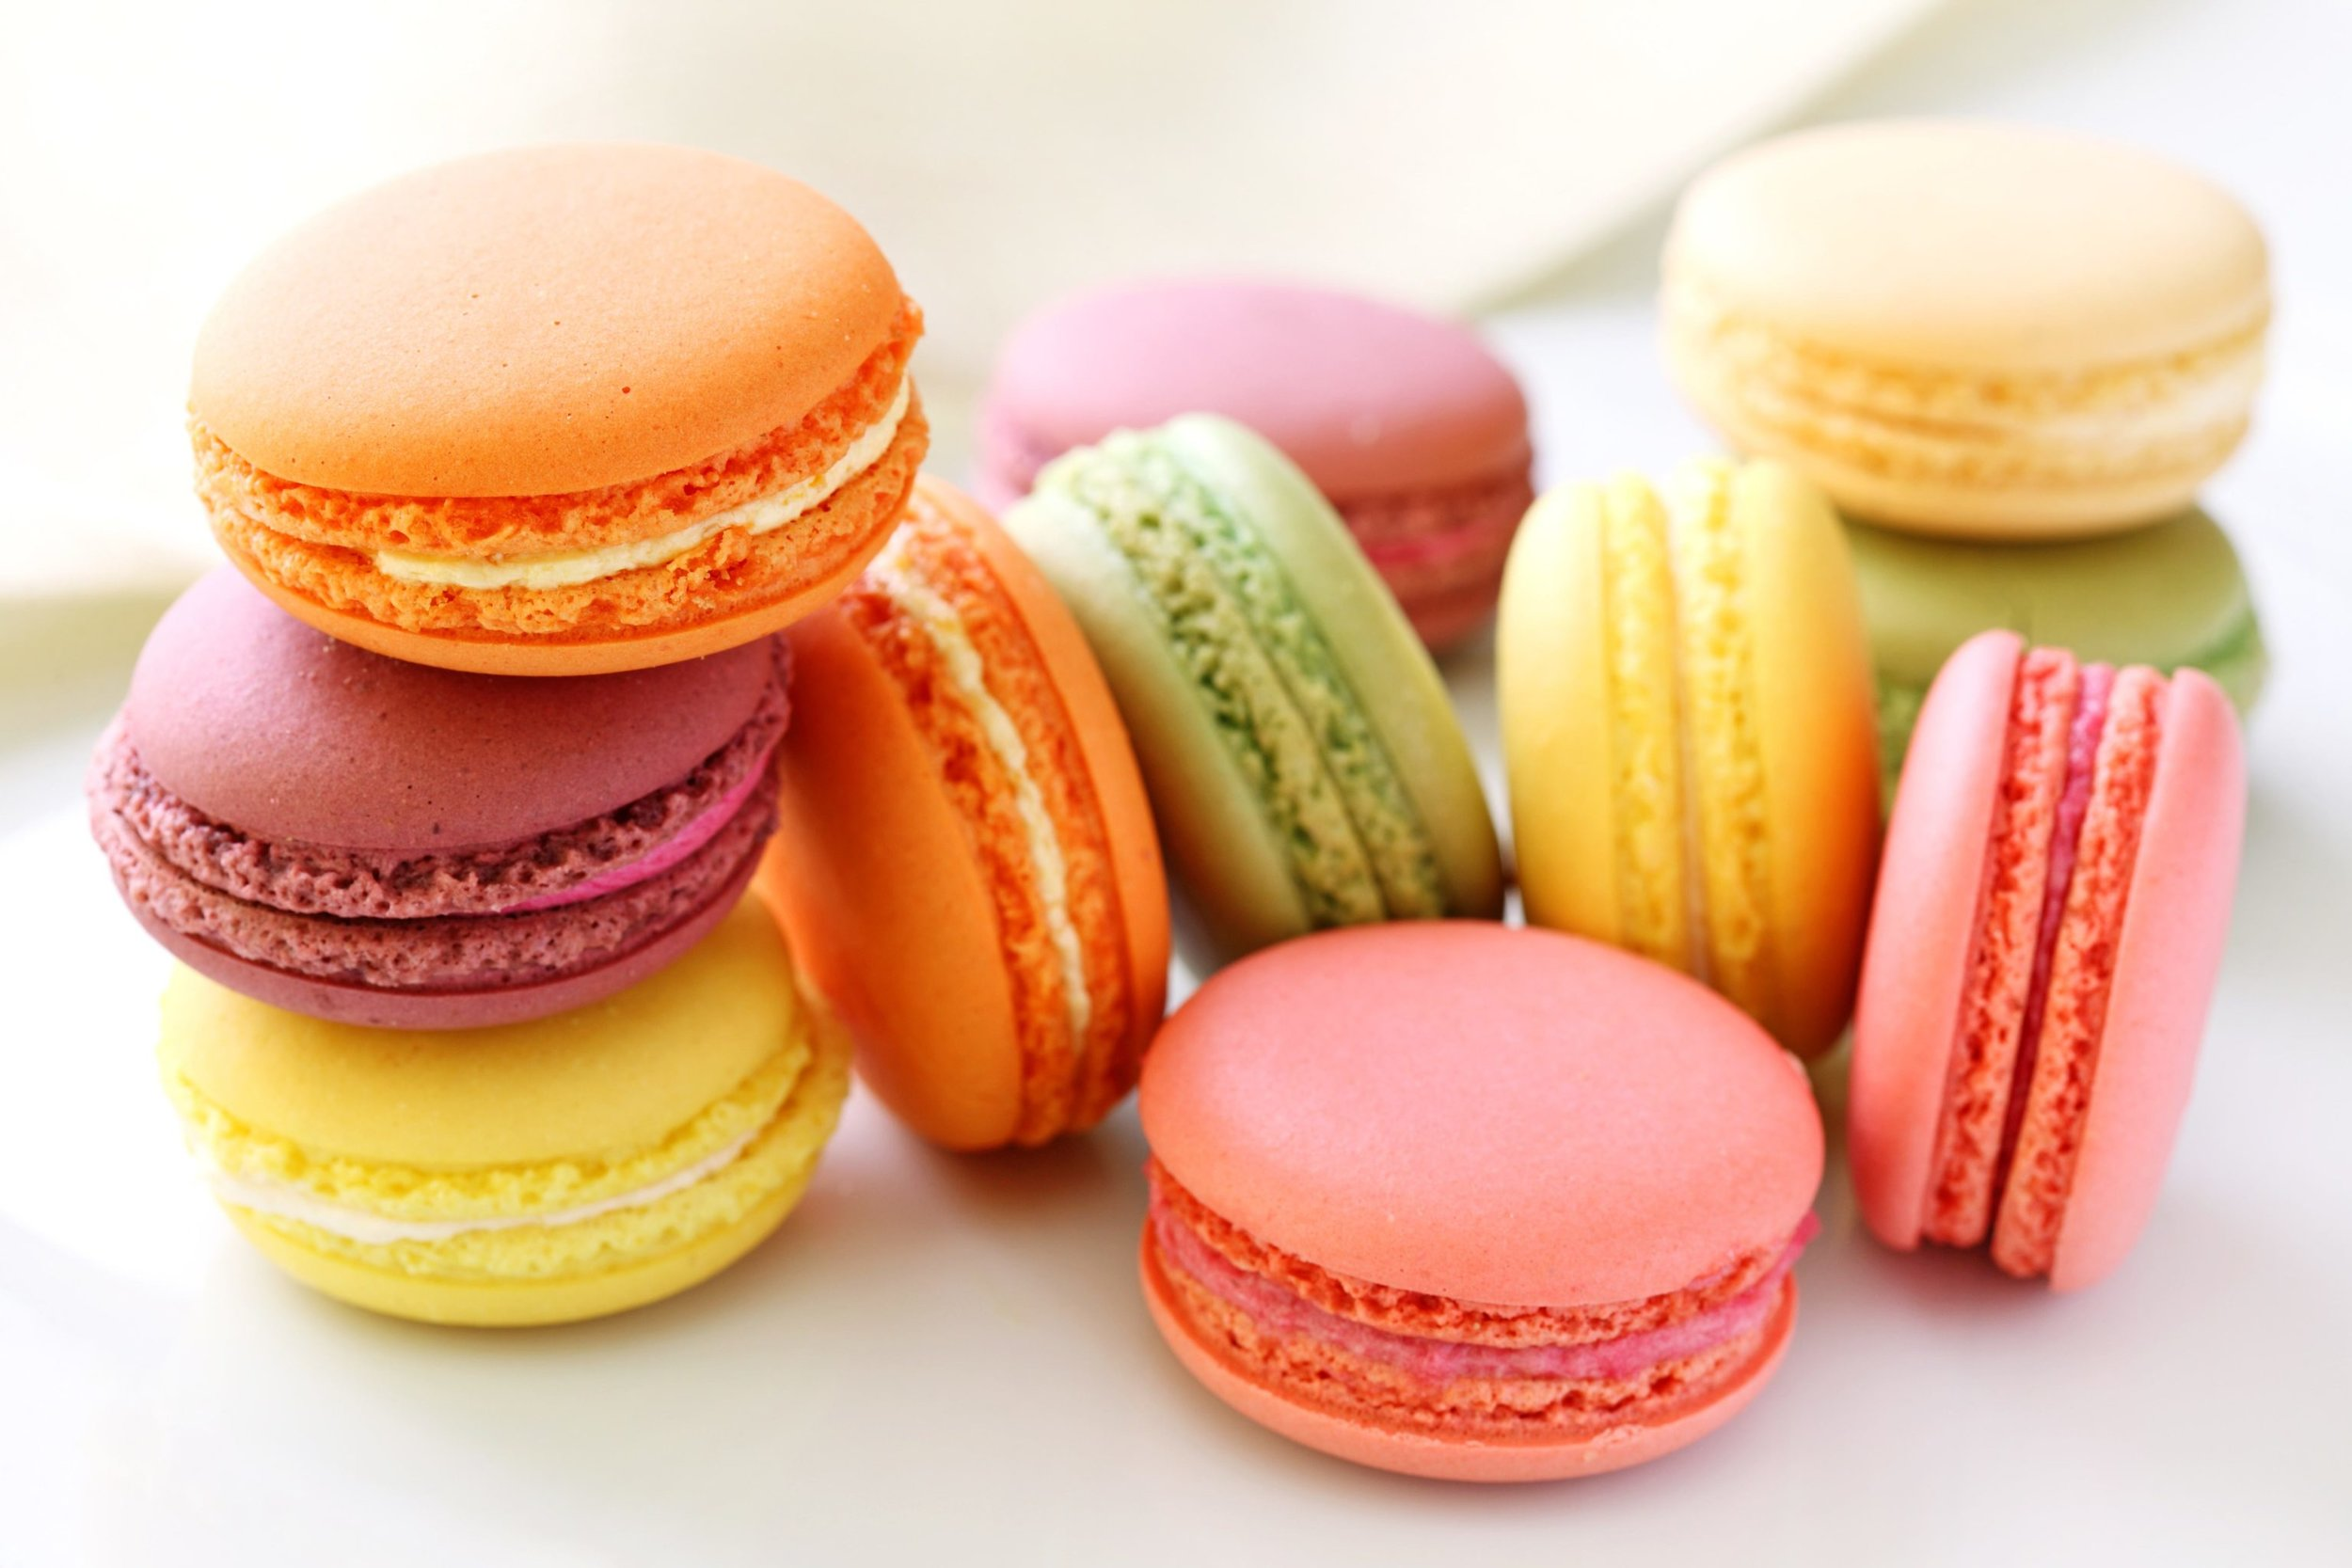 champagne-and-macarons.jpg